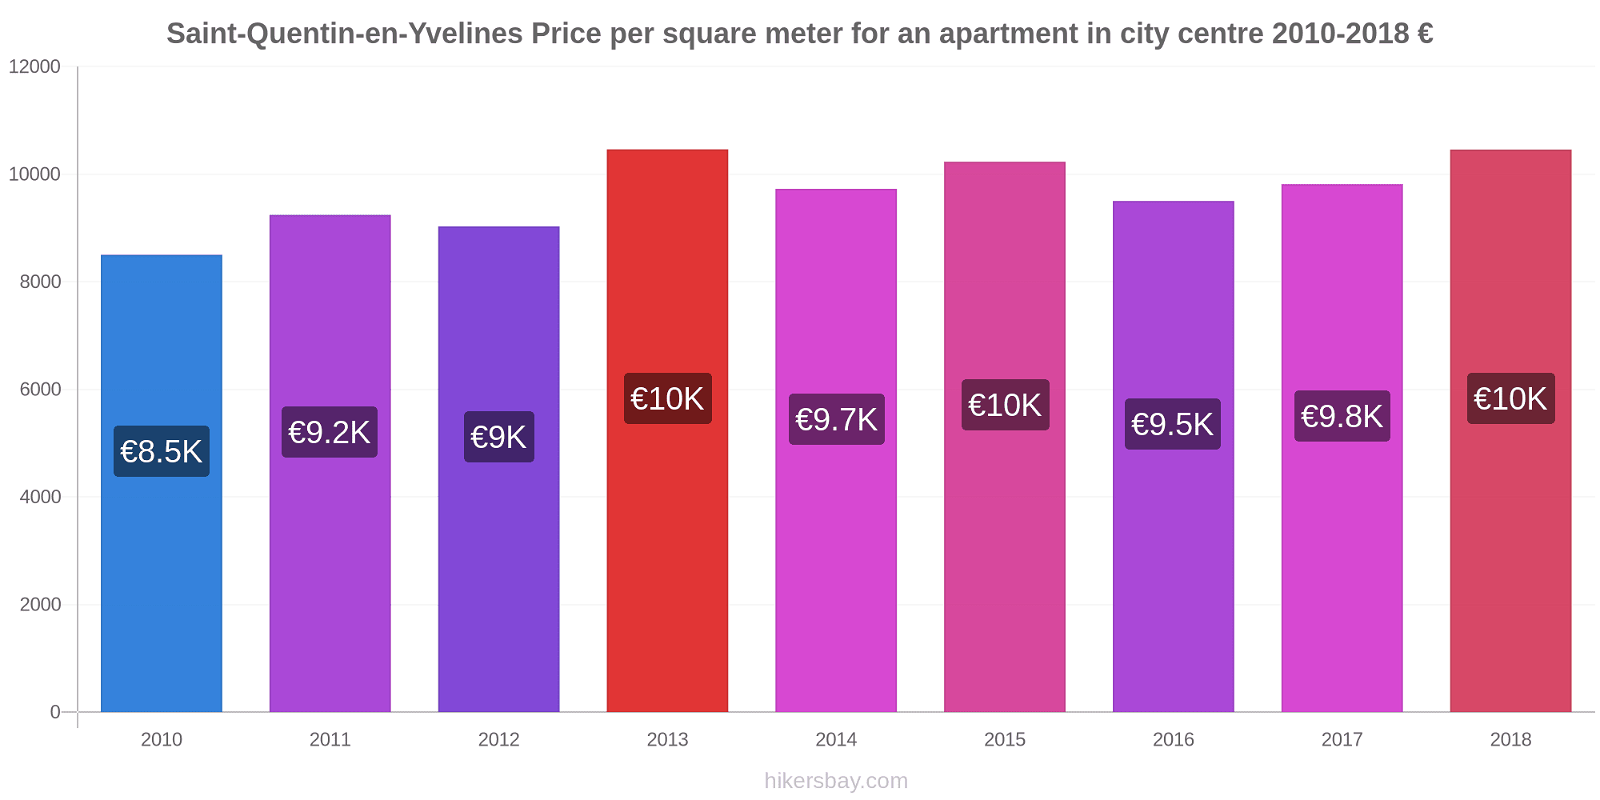 Saint-Quentin-en-Yvelines price changes Price per square meter for an apartment in city centre hikersbay.com